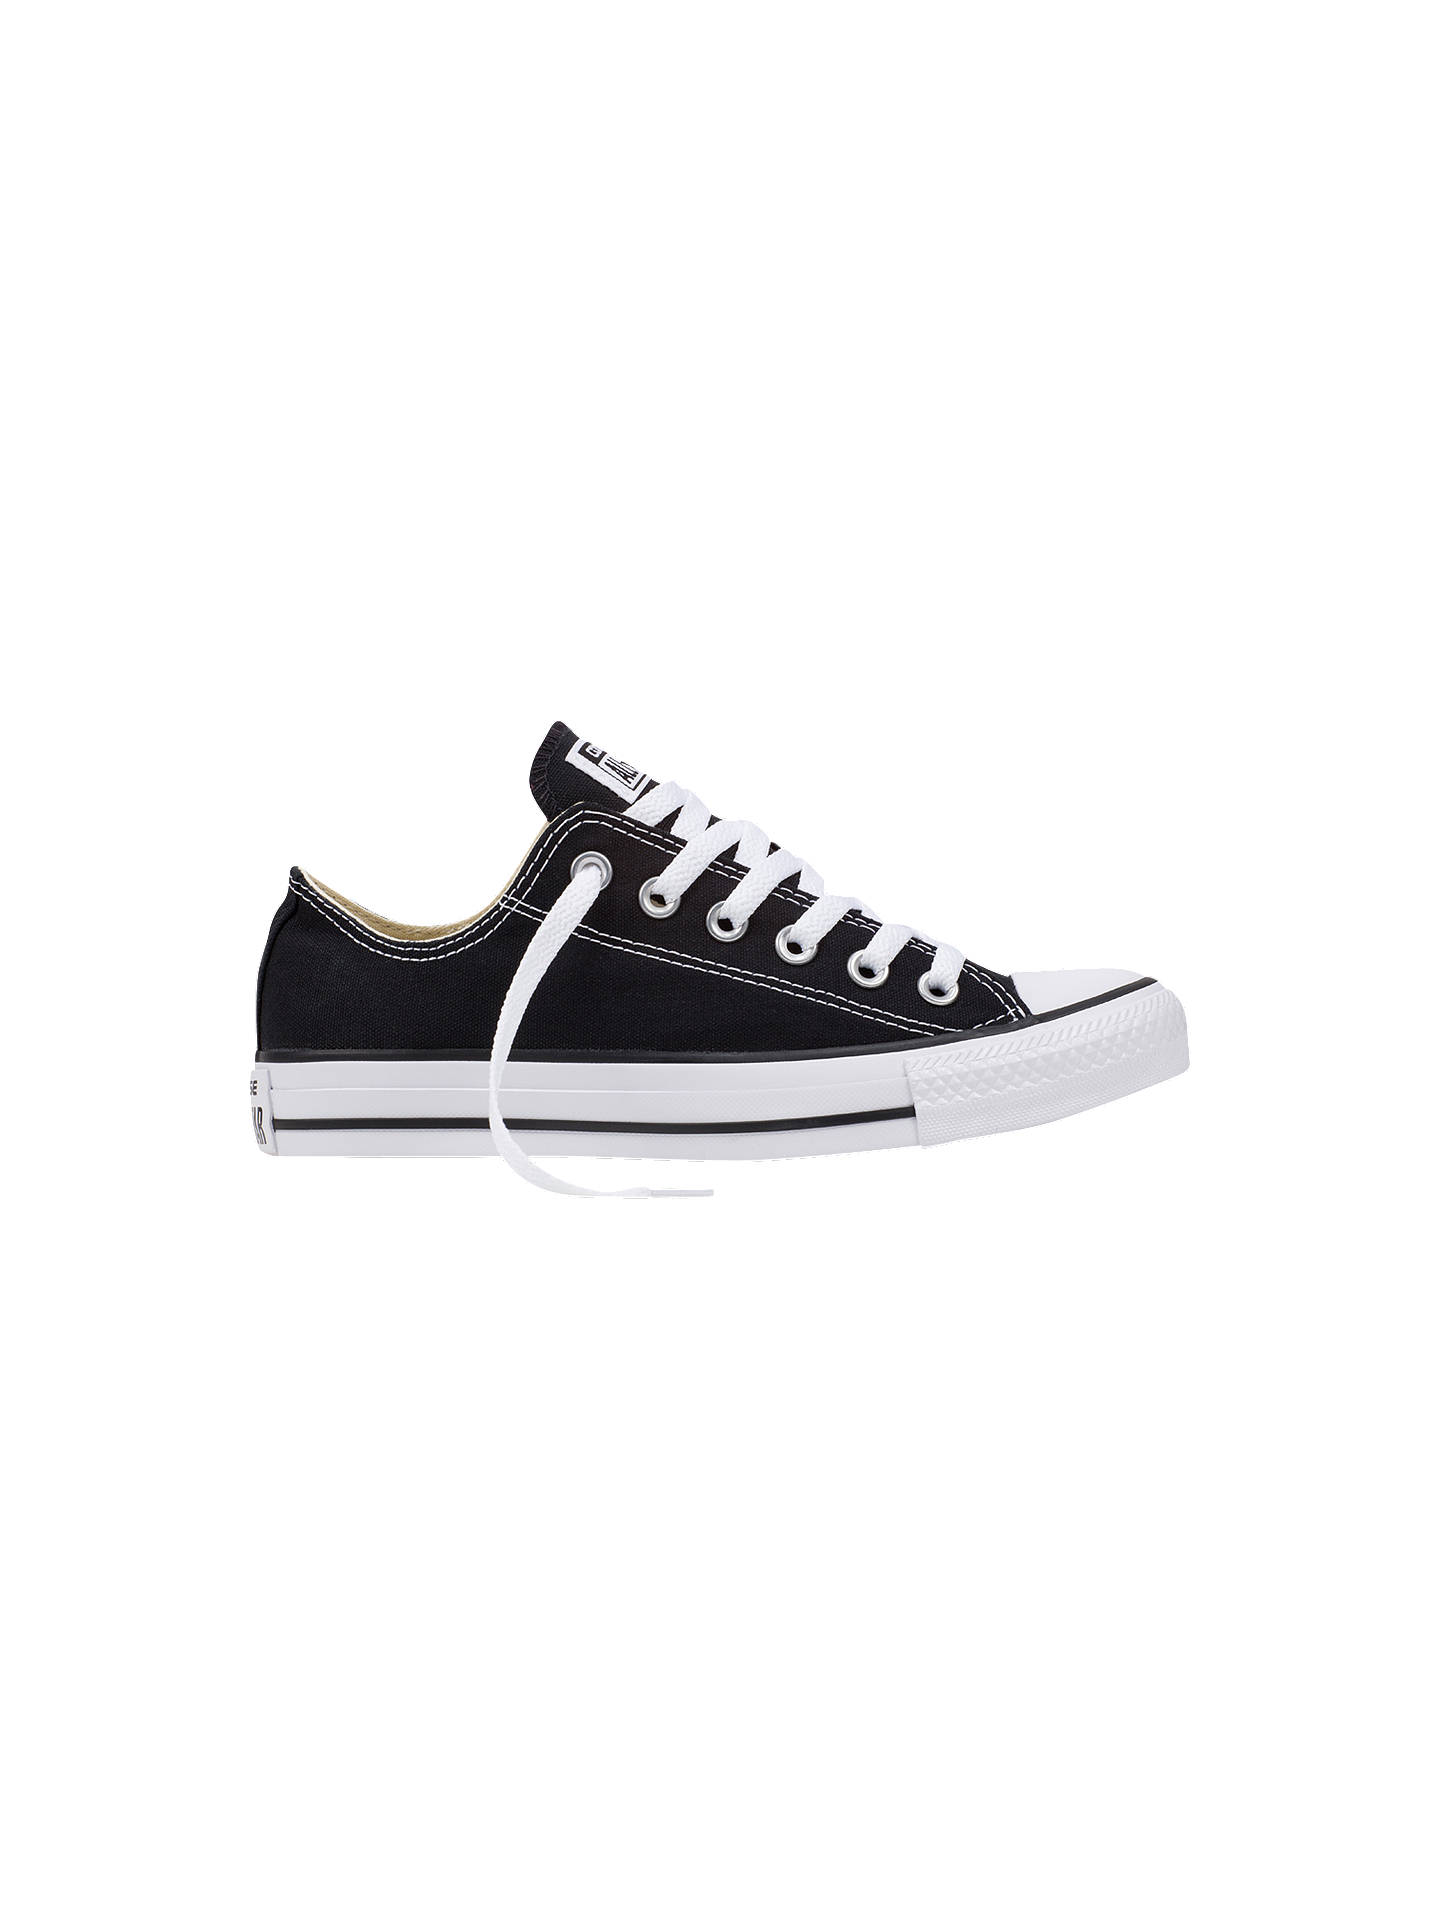 06ffa81226 Converse Chuck Taylor All Star Ox Trainers, Black